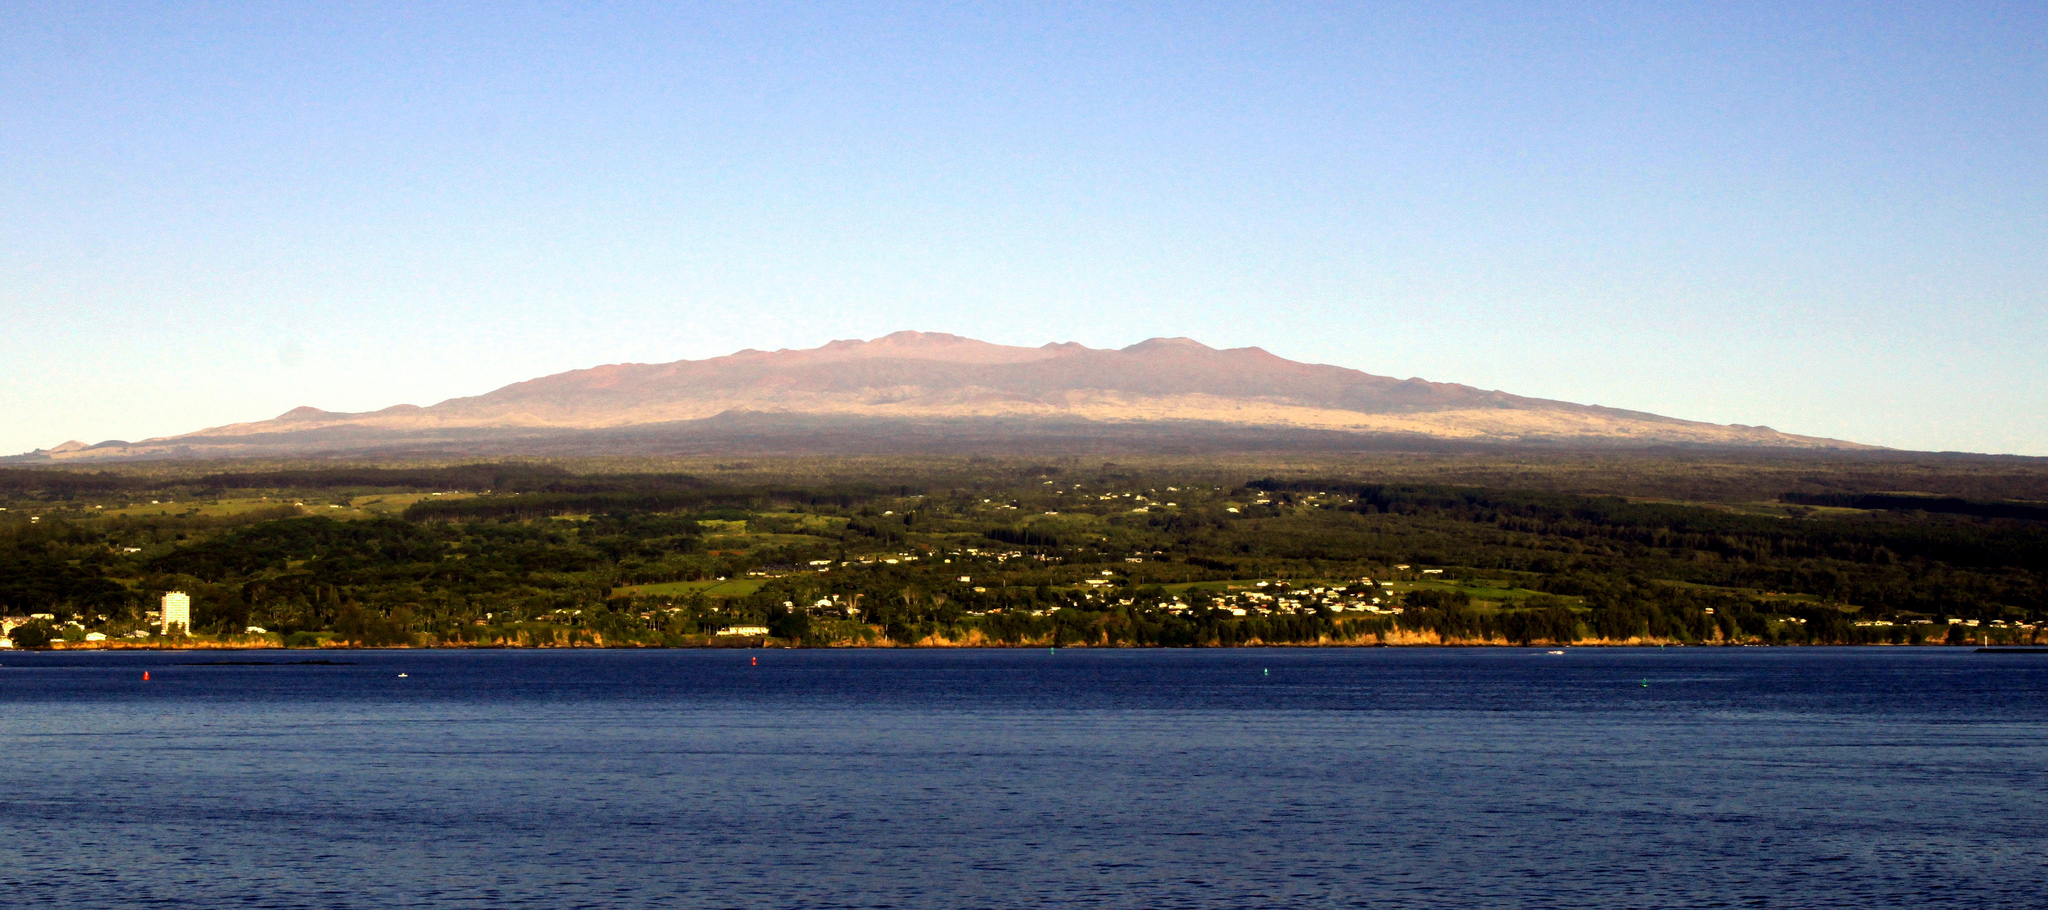 View of Maunakea from Hilo Bay.